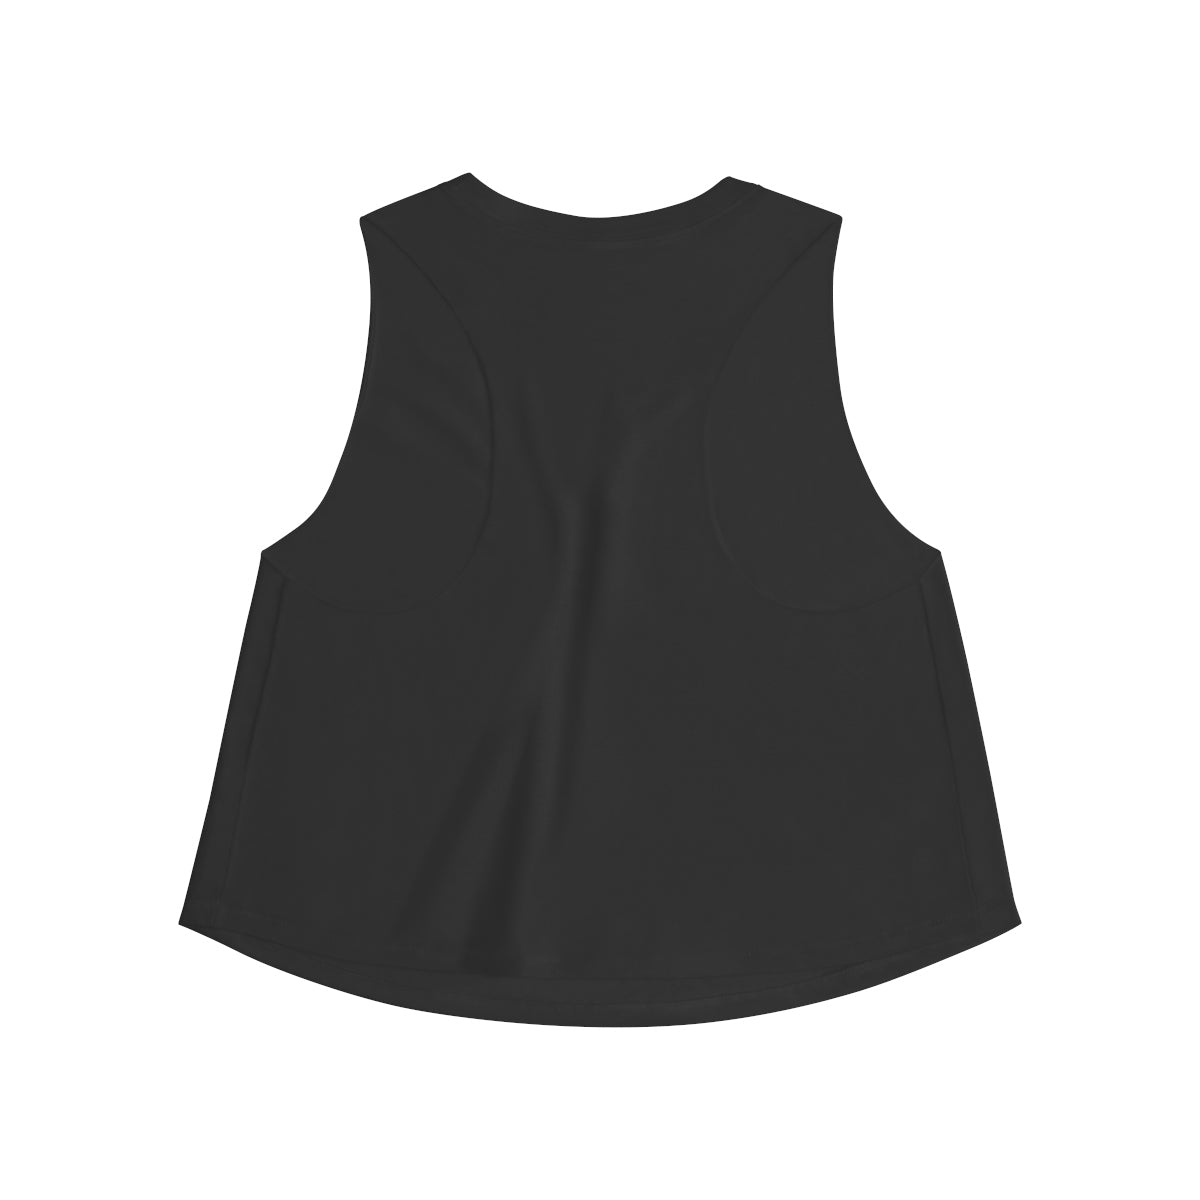 Boom! Women's Crop top